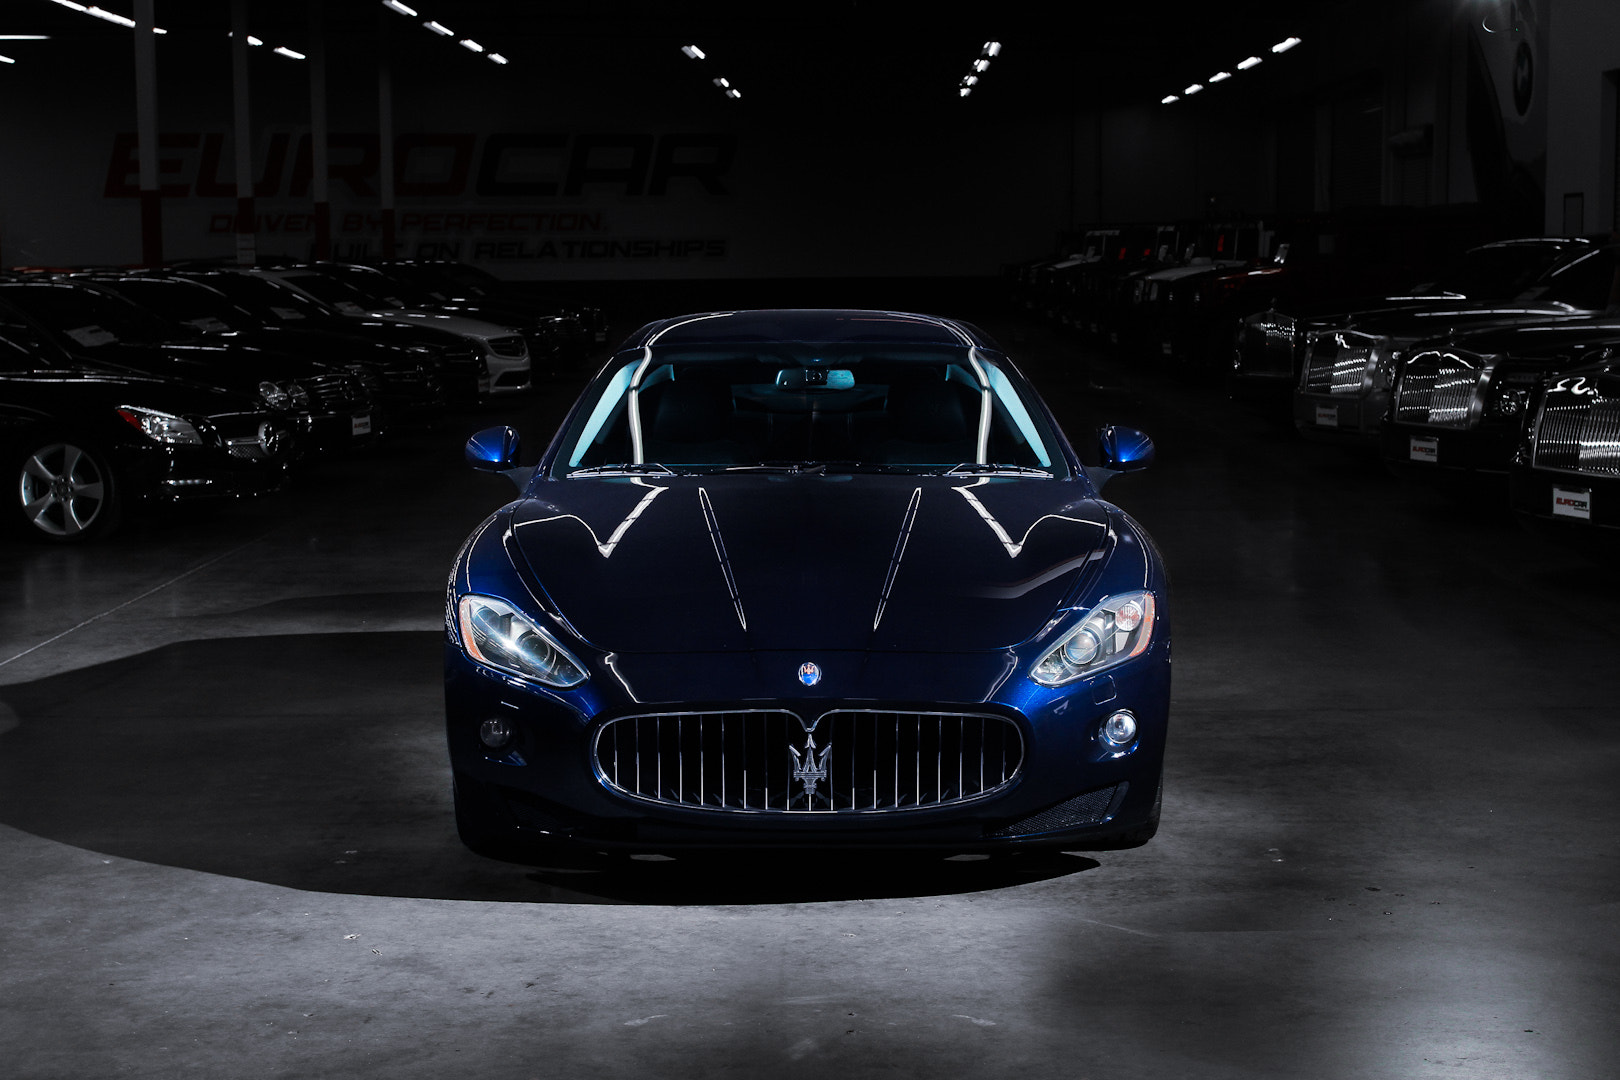 Photograph Blue Maserati GT by Philip Tieu on 500px